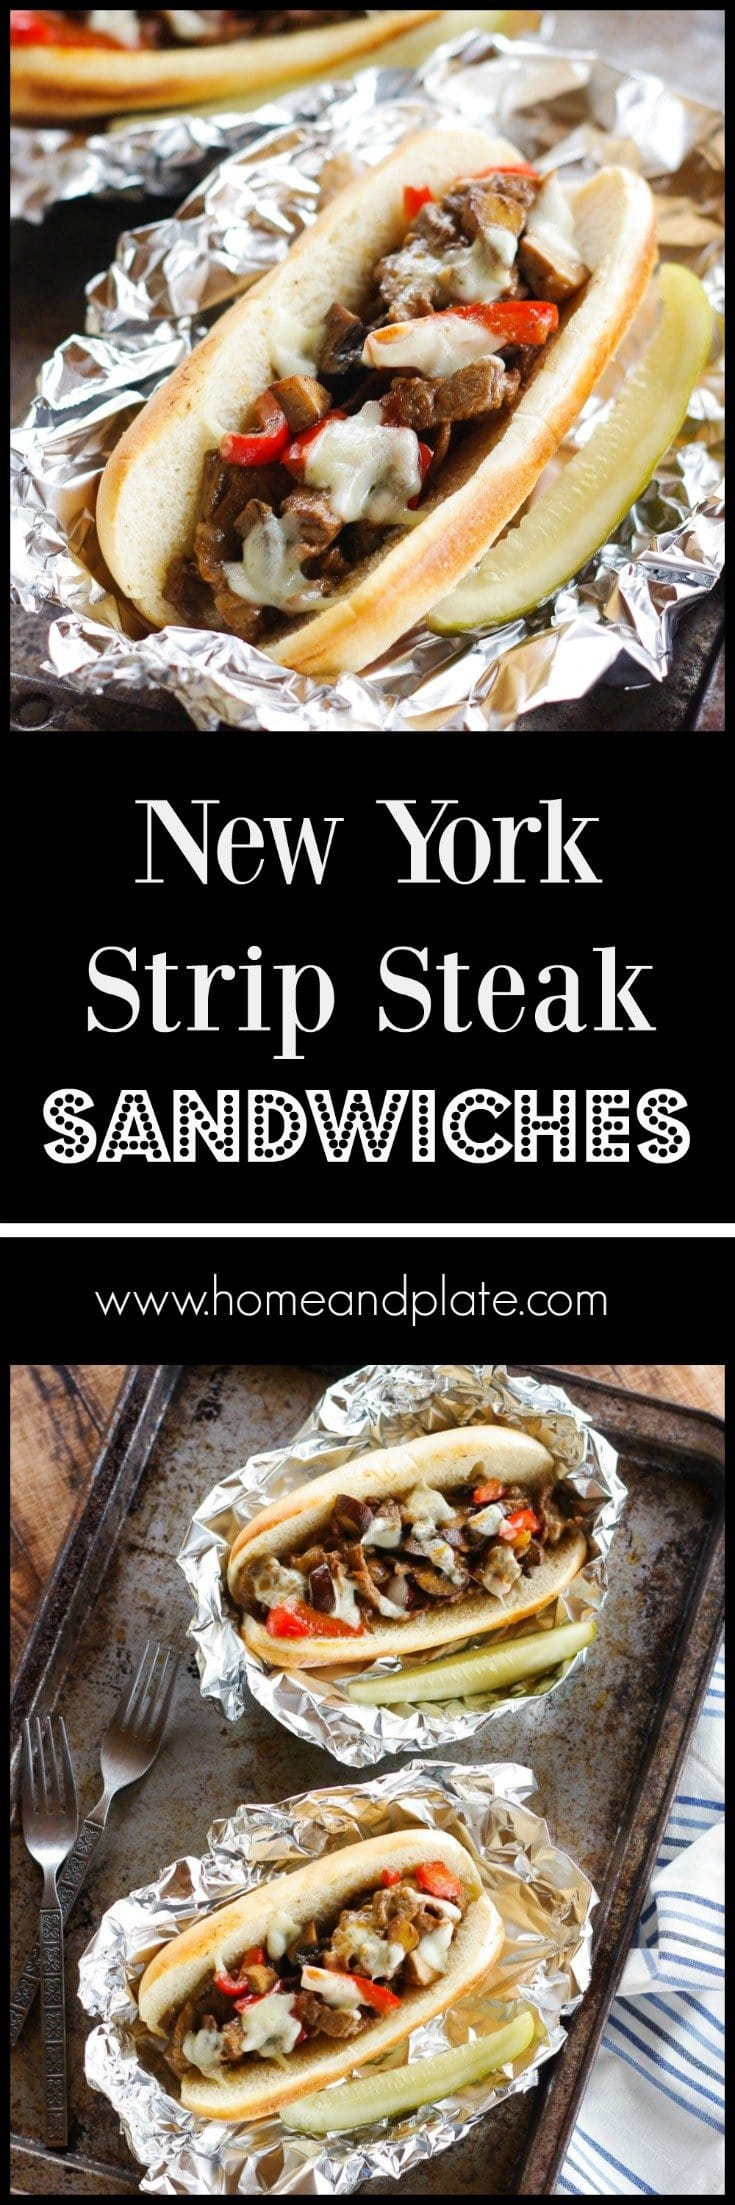 New York Strip Steak Sandwiches | www,homeandplate.com | My classic Philly cheesesteak sandwiches are cheesy and meaty and perfect on game day.